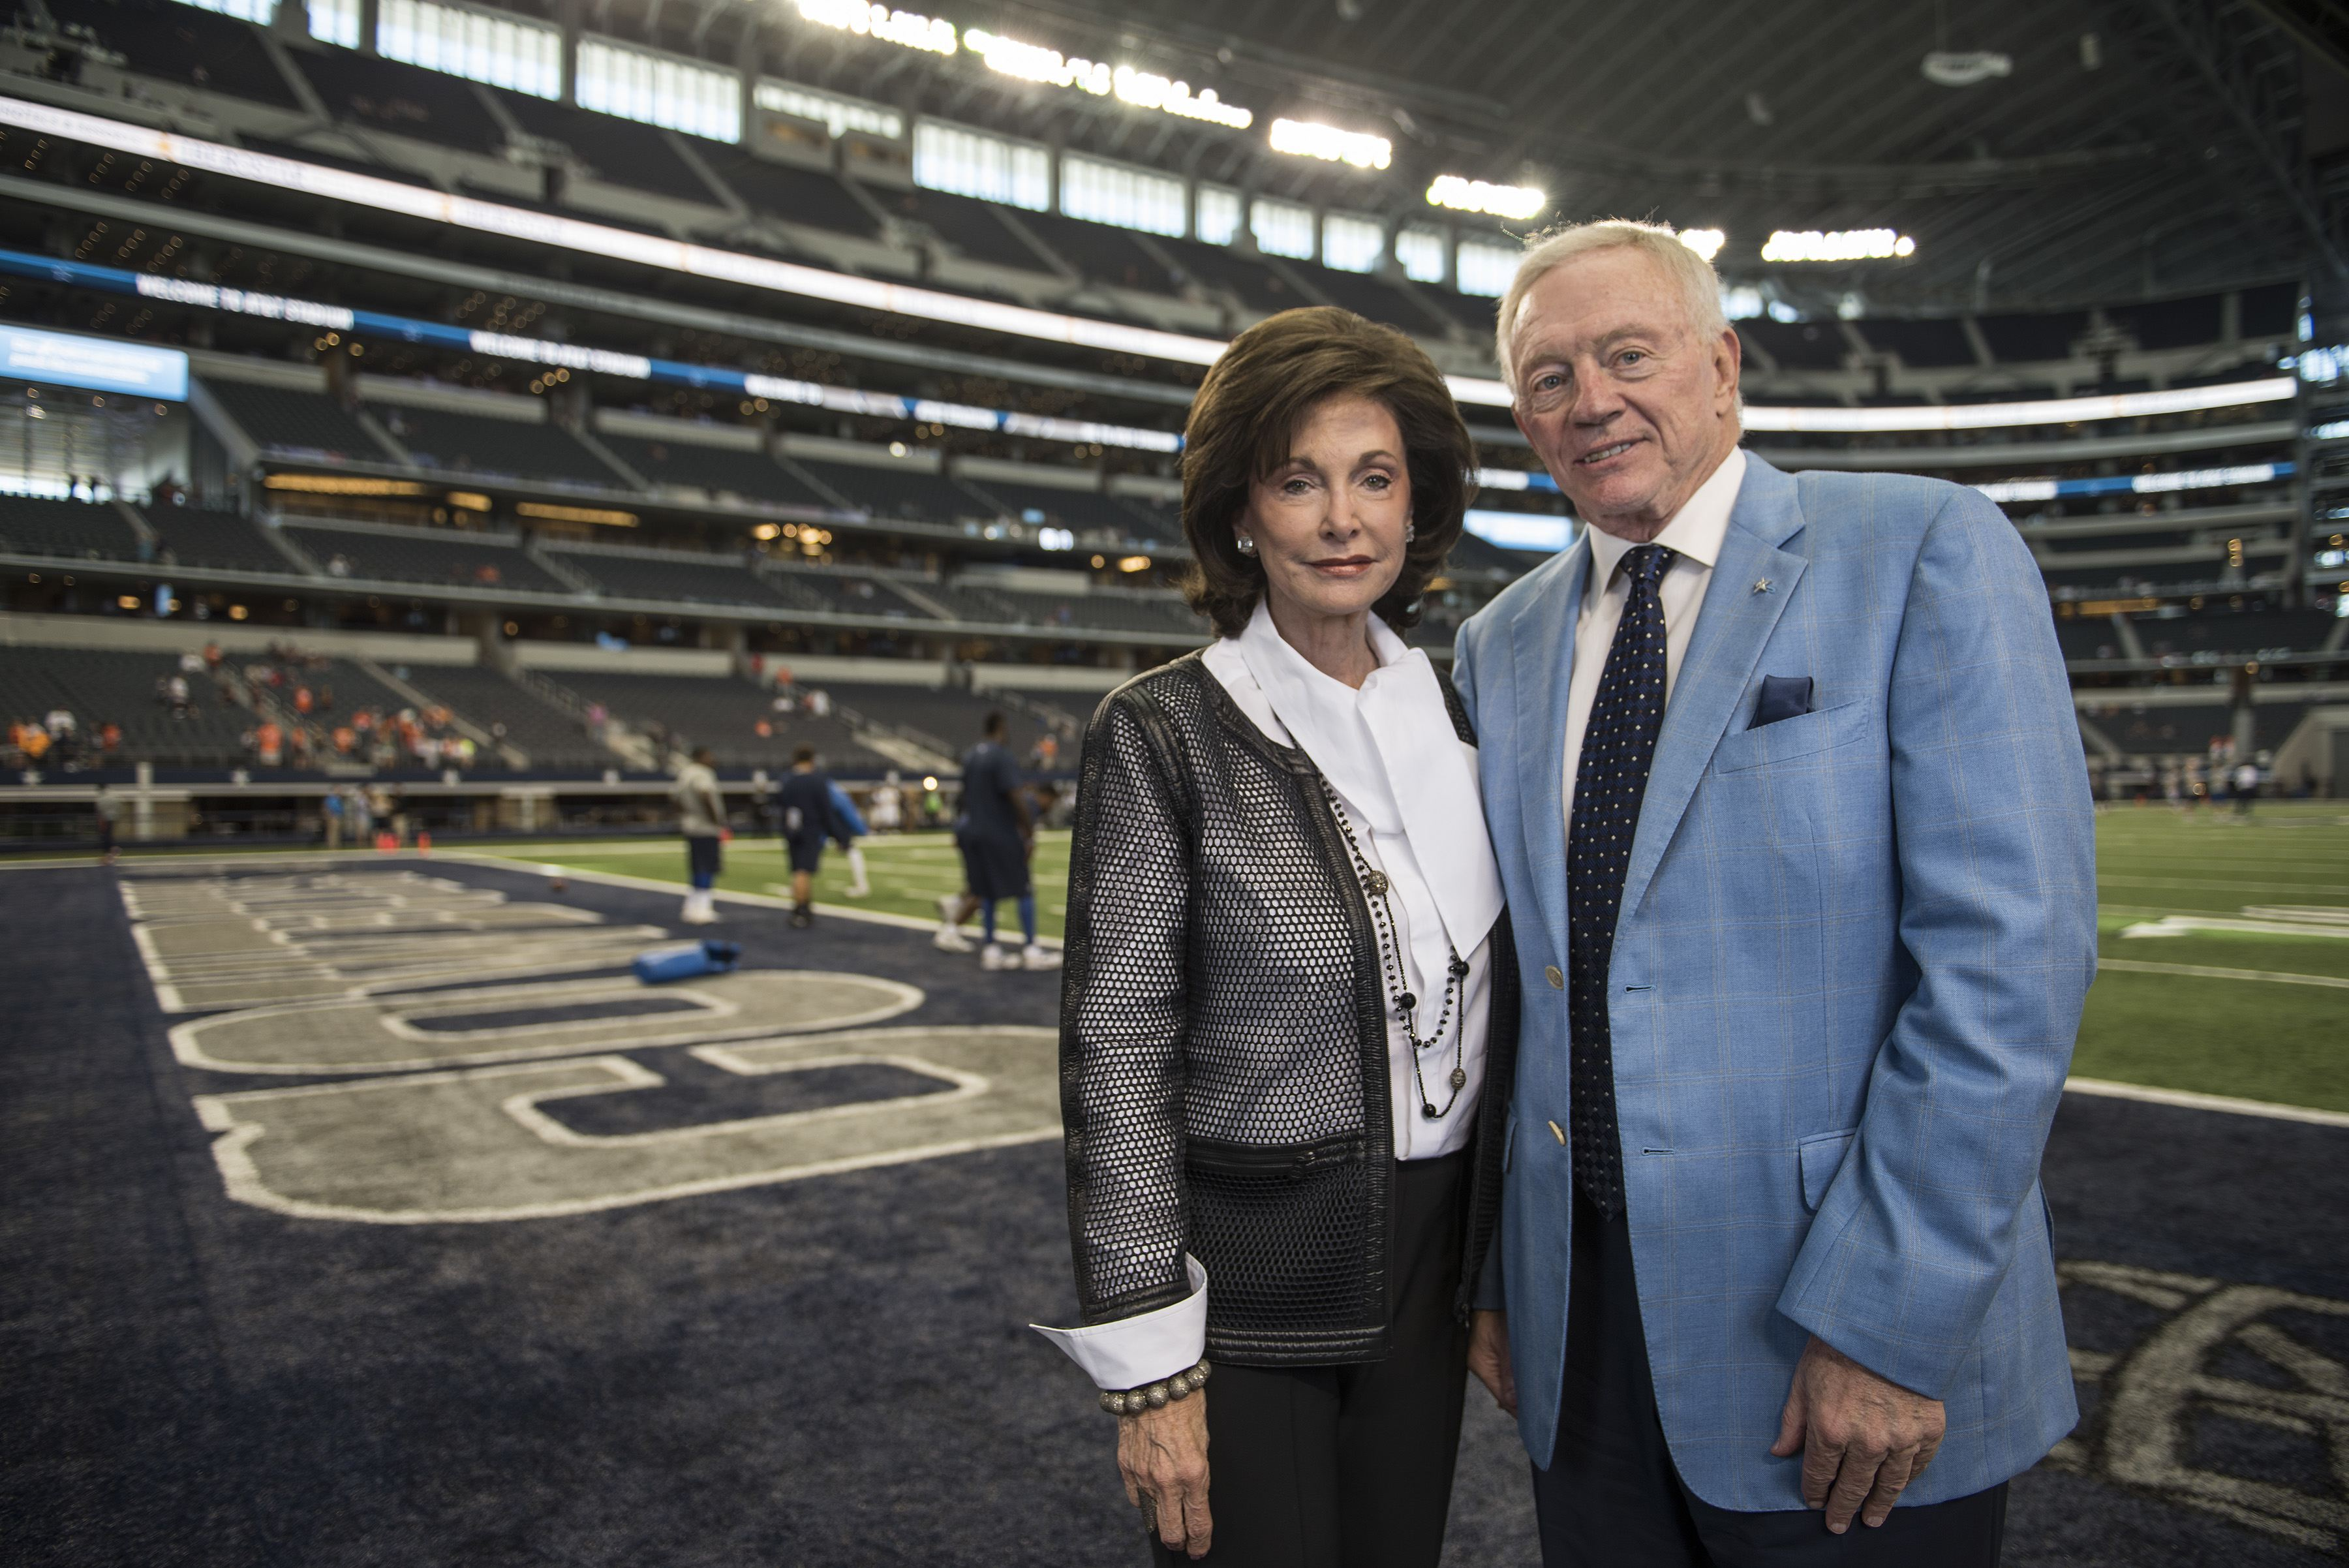 Gene Jones To Present Husband Jerry At Hall of Fame Induction 3